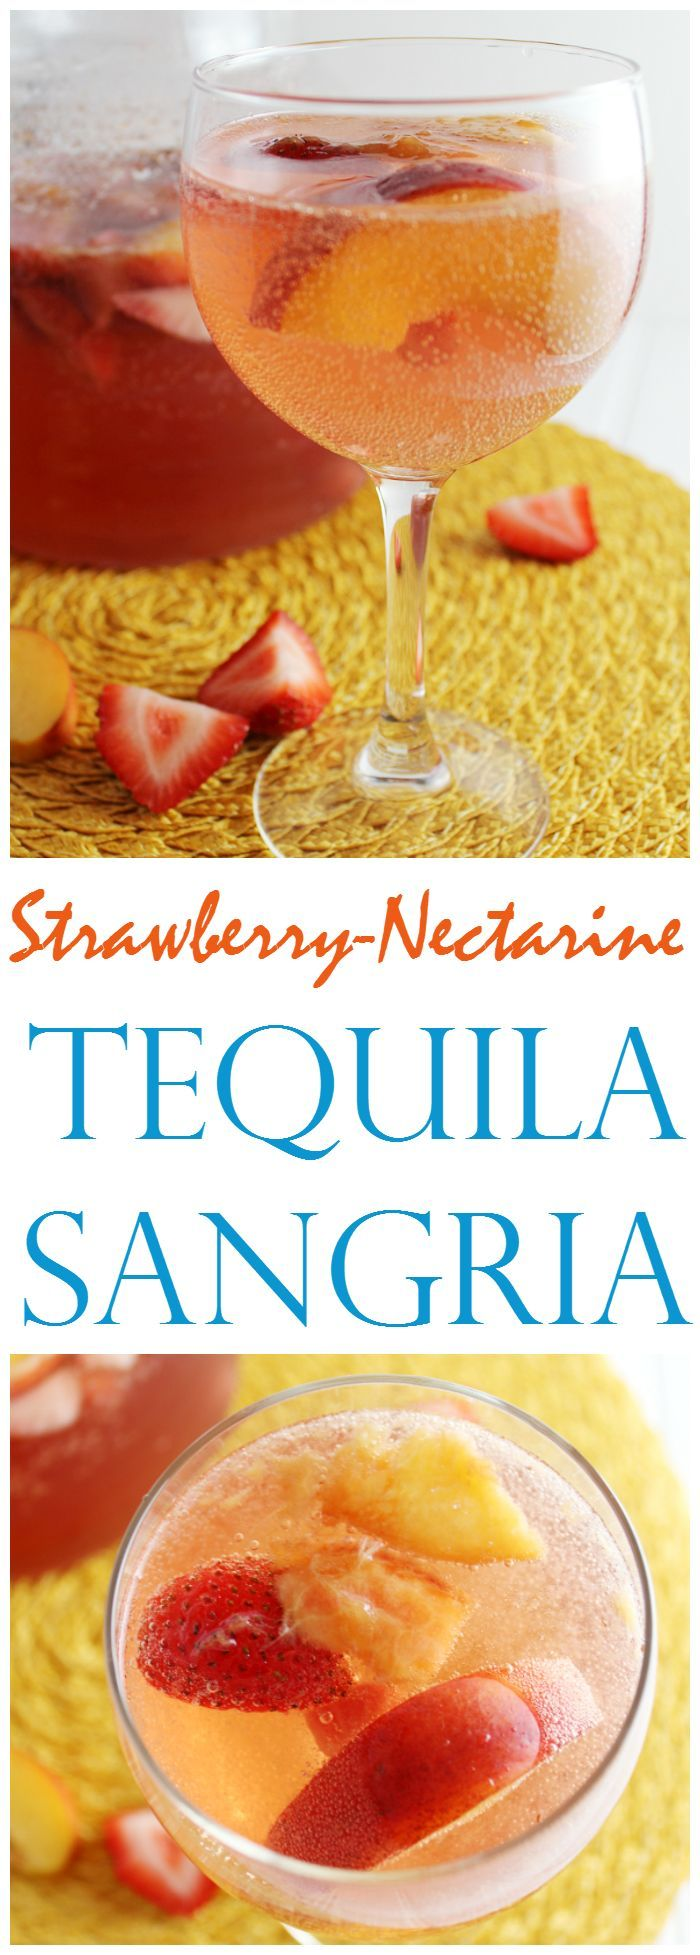 Strawberry-Nectarine Tequila Sangria - You're going to want a big pitcher of this Strawberry-Nectarine Tequila Sangria for your next party! Or... maybe just for an afternoon at home.